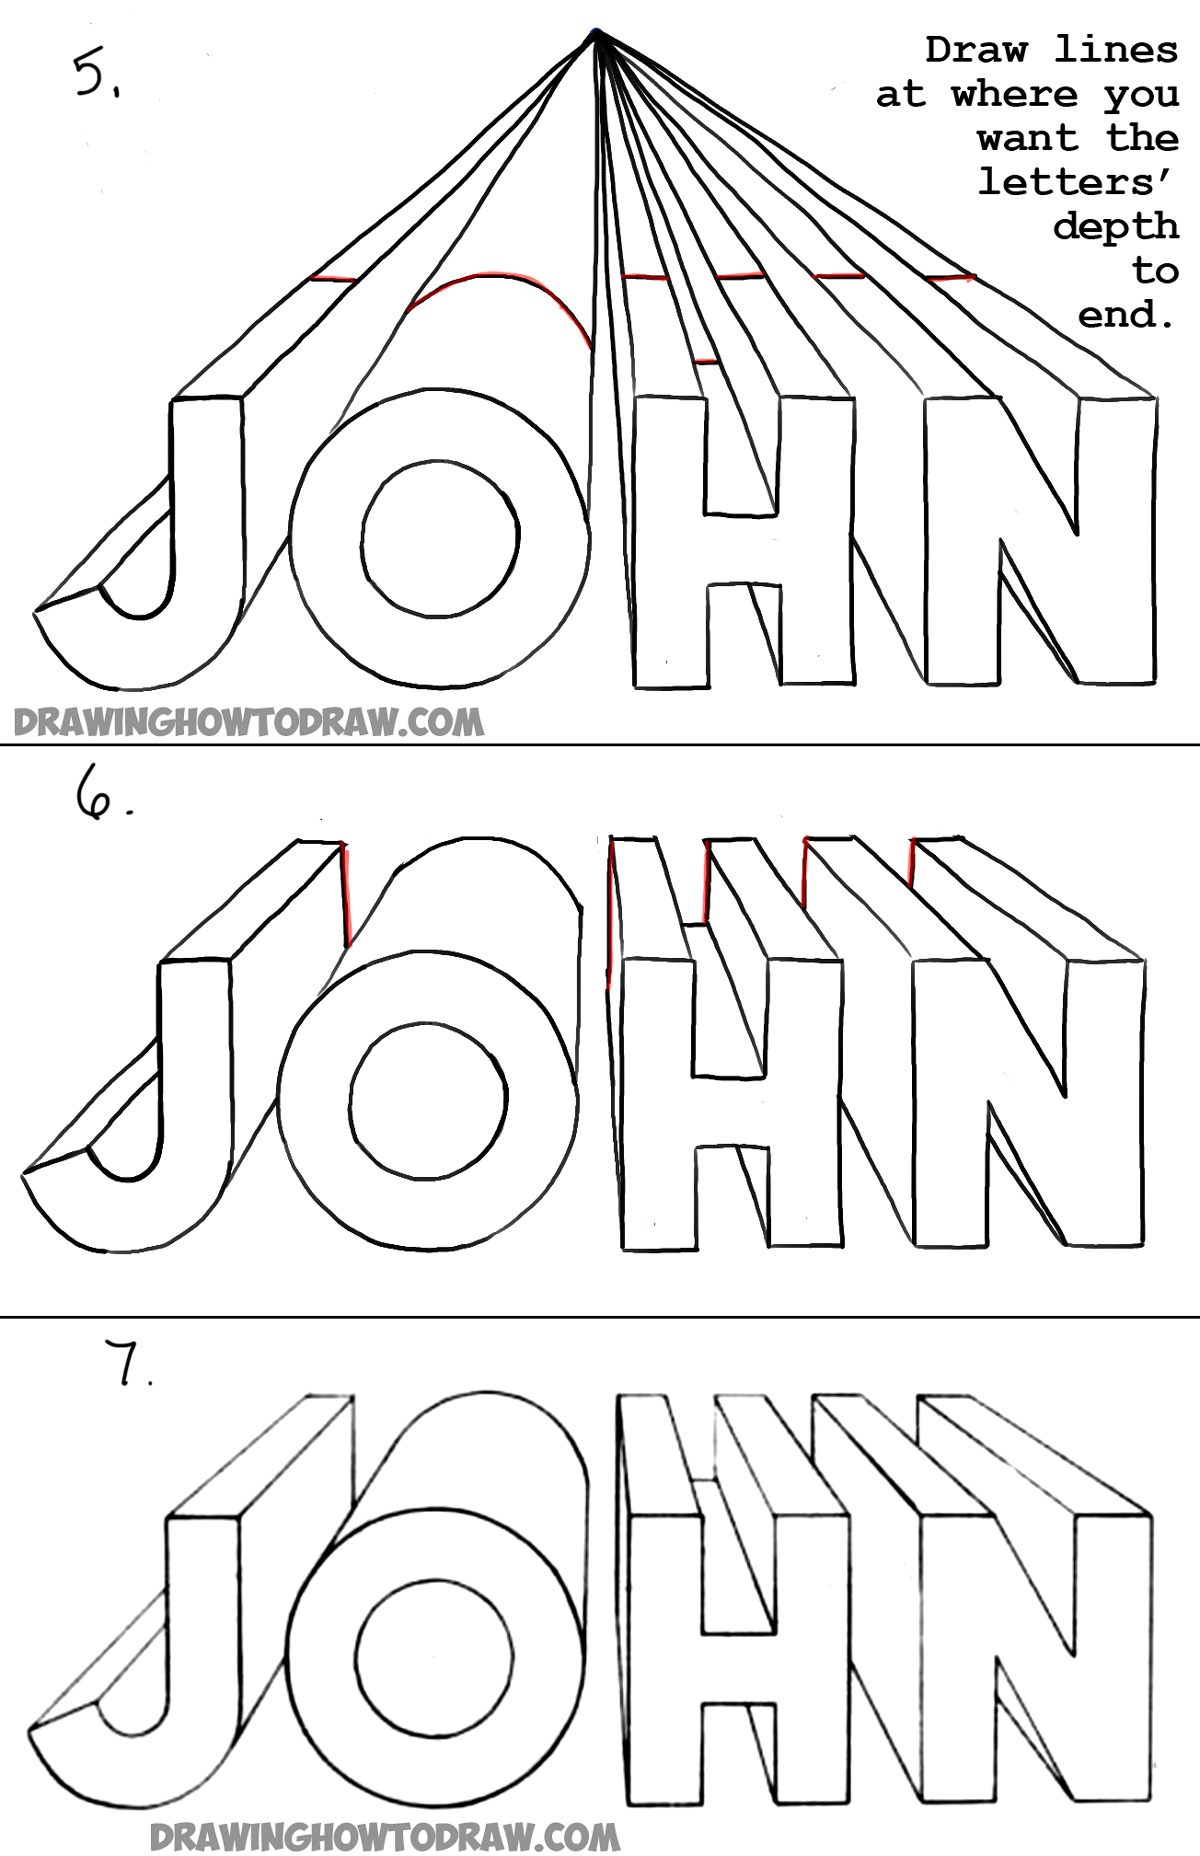 How to Draw 3D Letters in e Point Perspective Perspective